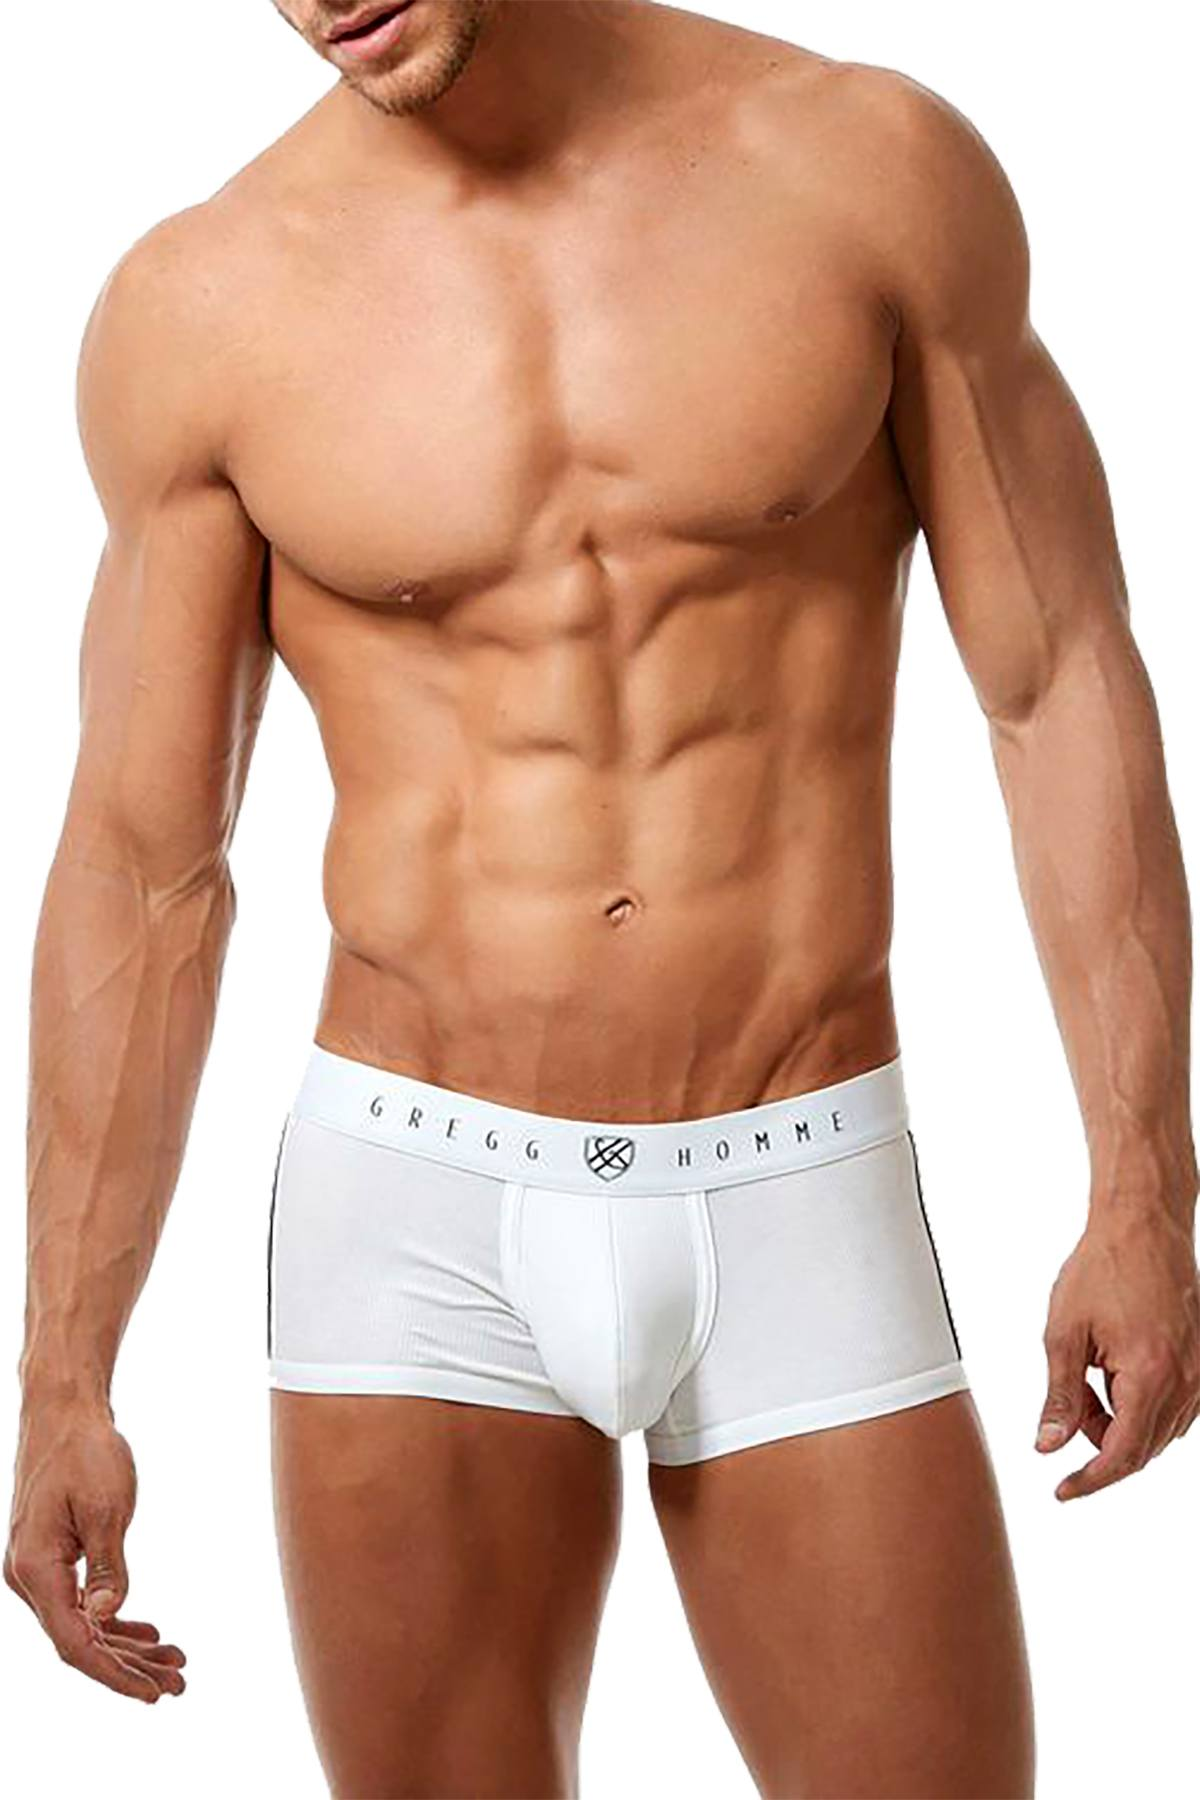 Gregg Homme White Menz Boxer Brief